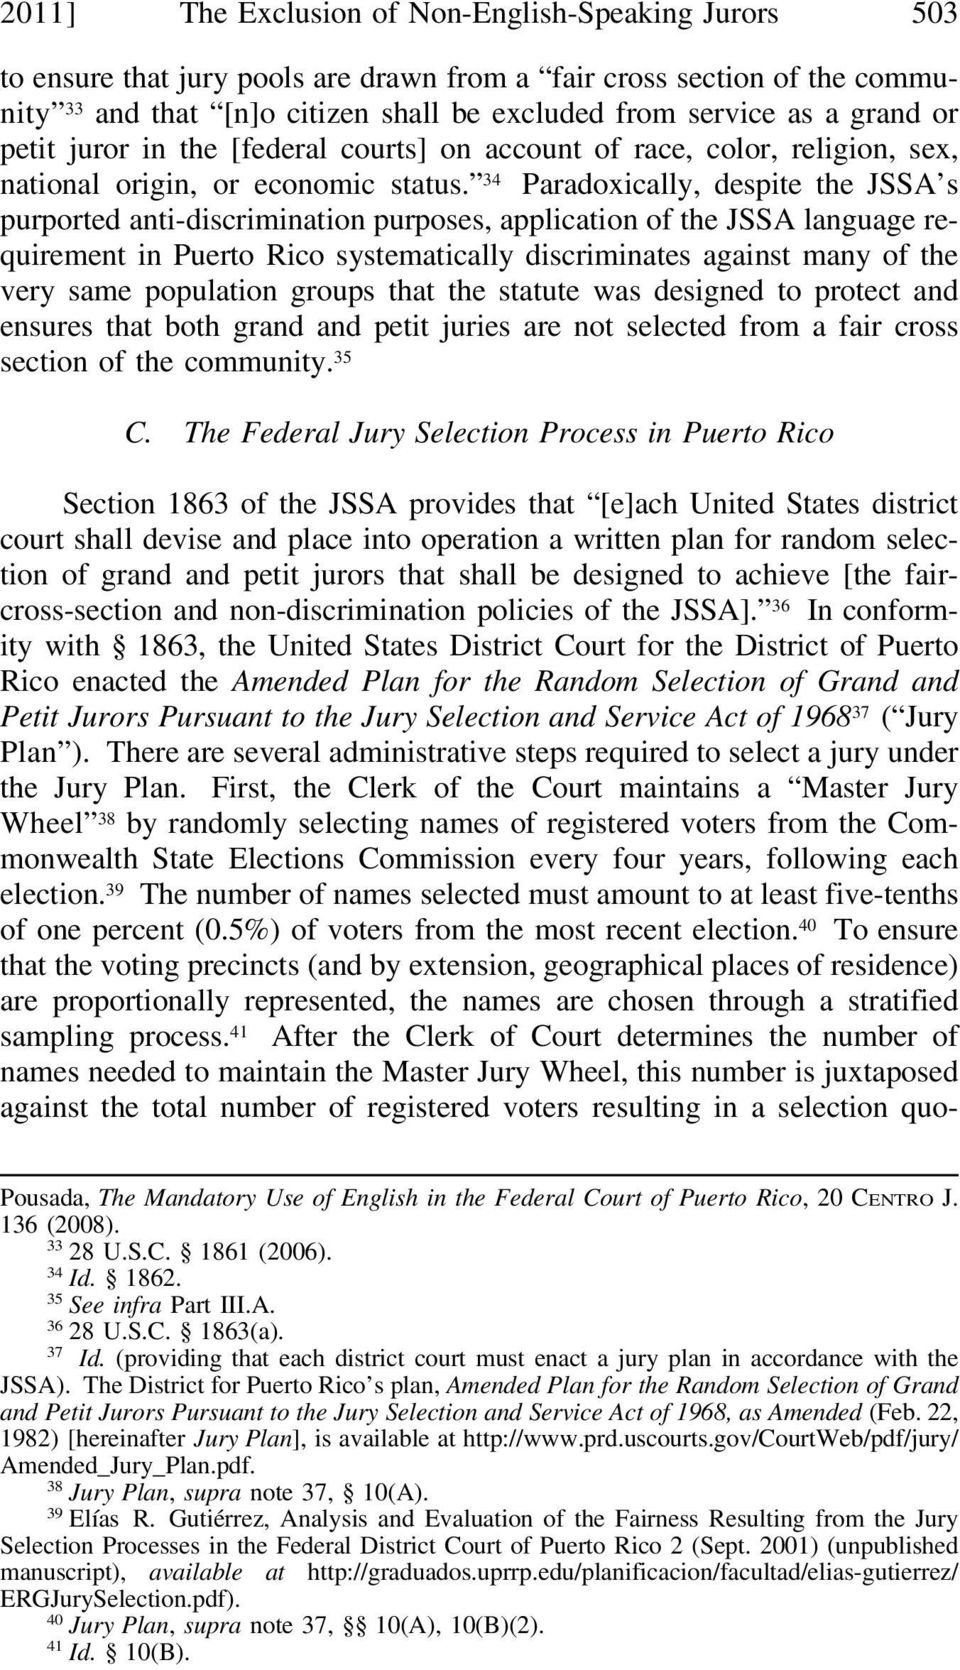 34 Paradoxically, despite the JSSA s purported anti-discrimination purposes, application of the JSSA language requirement in Puerto Rico systematically discriminates against many of the very same